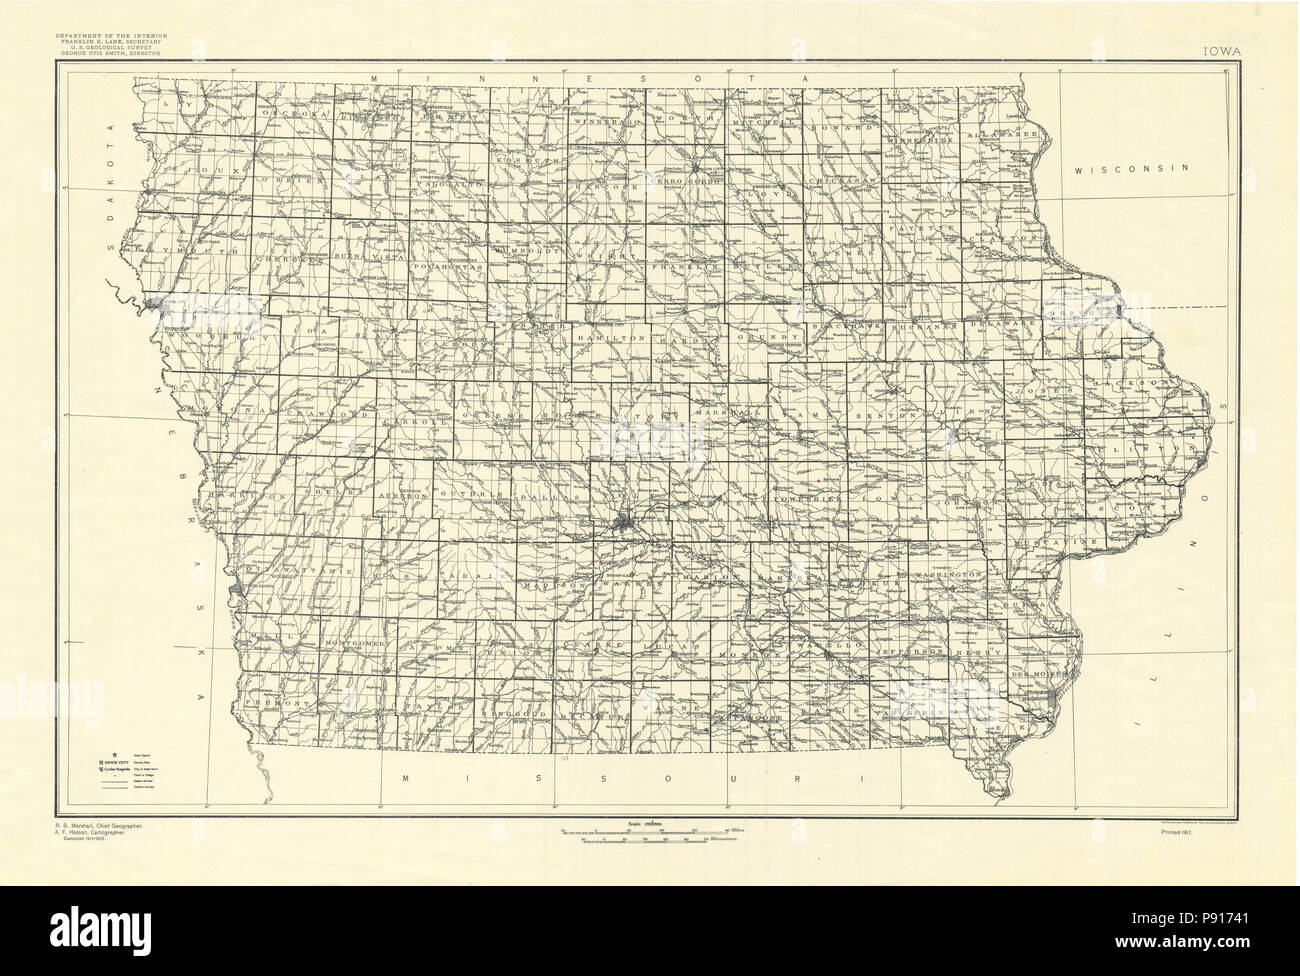 Old Iowa Map.Old Map Of Iowa Stock Photos Old Map Of Iowa Stock Images Alamy